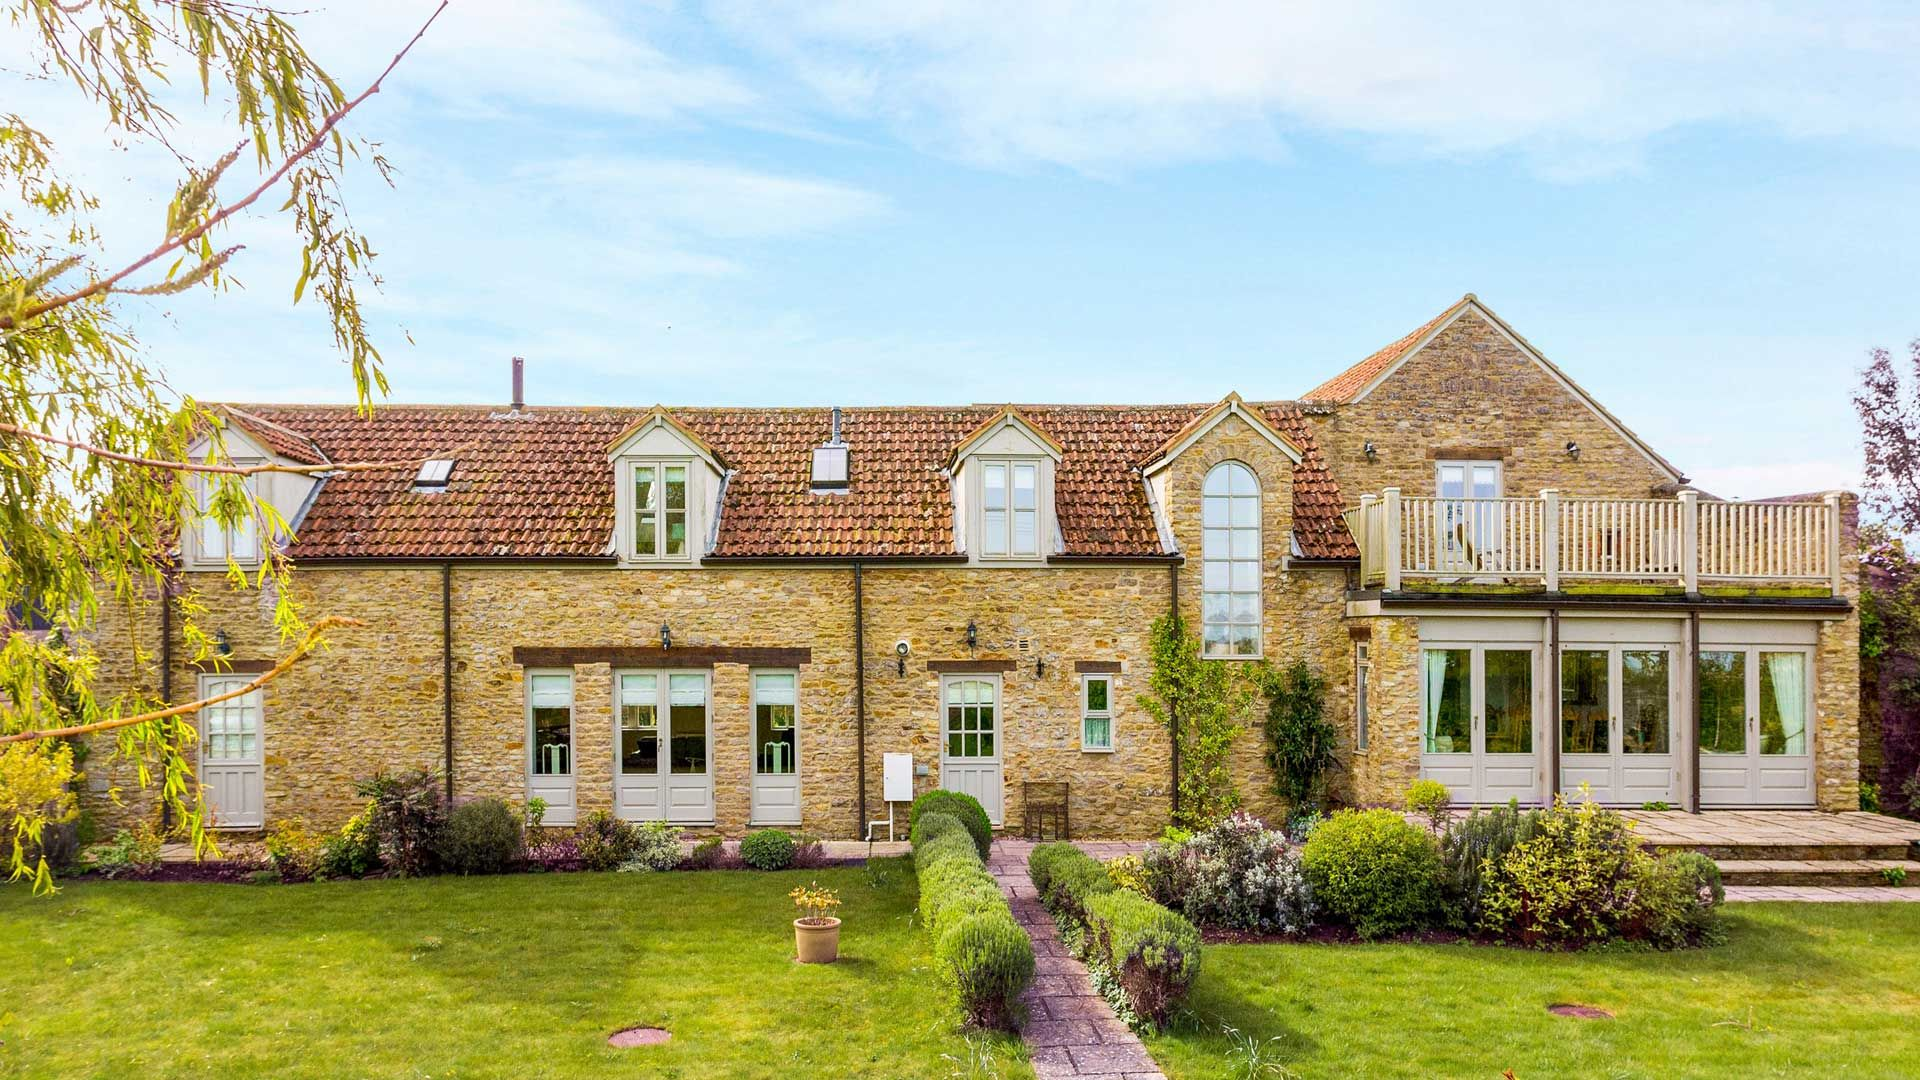 Haremore Farm - StayCotswold